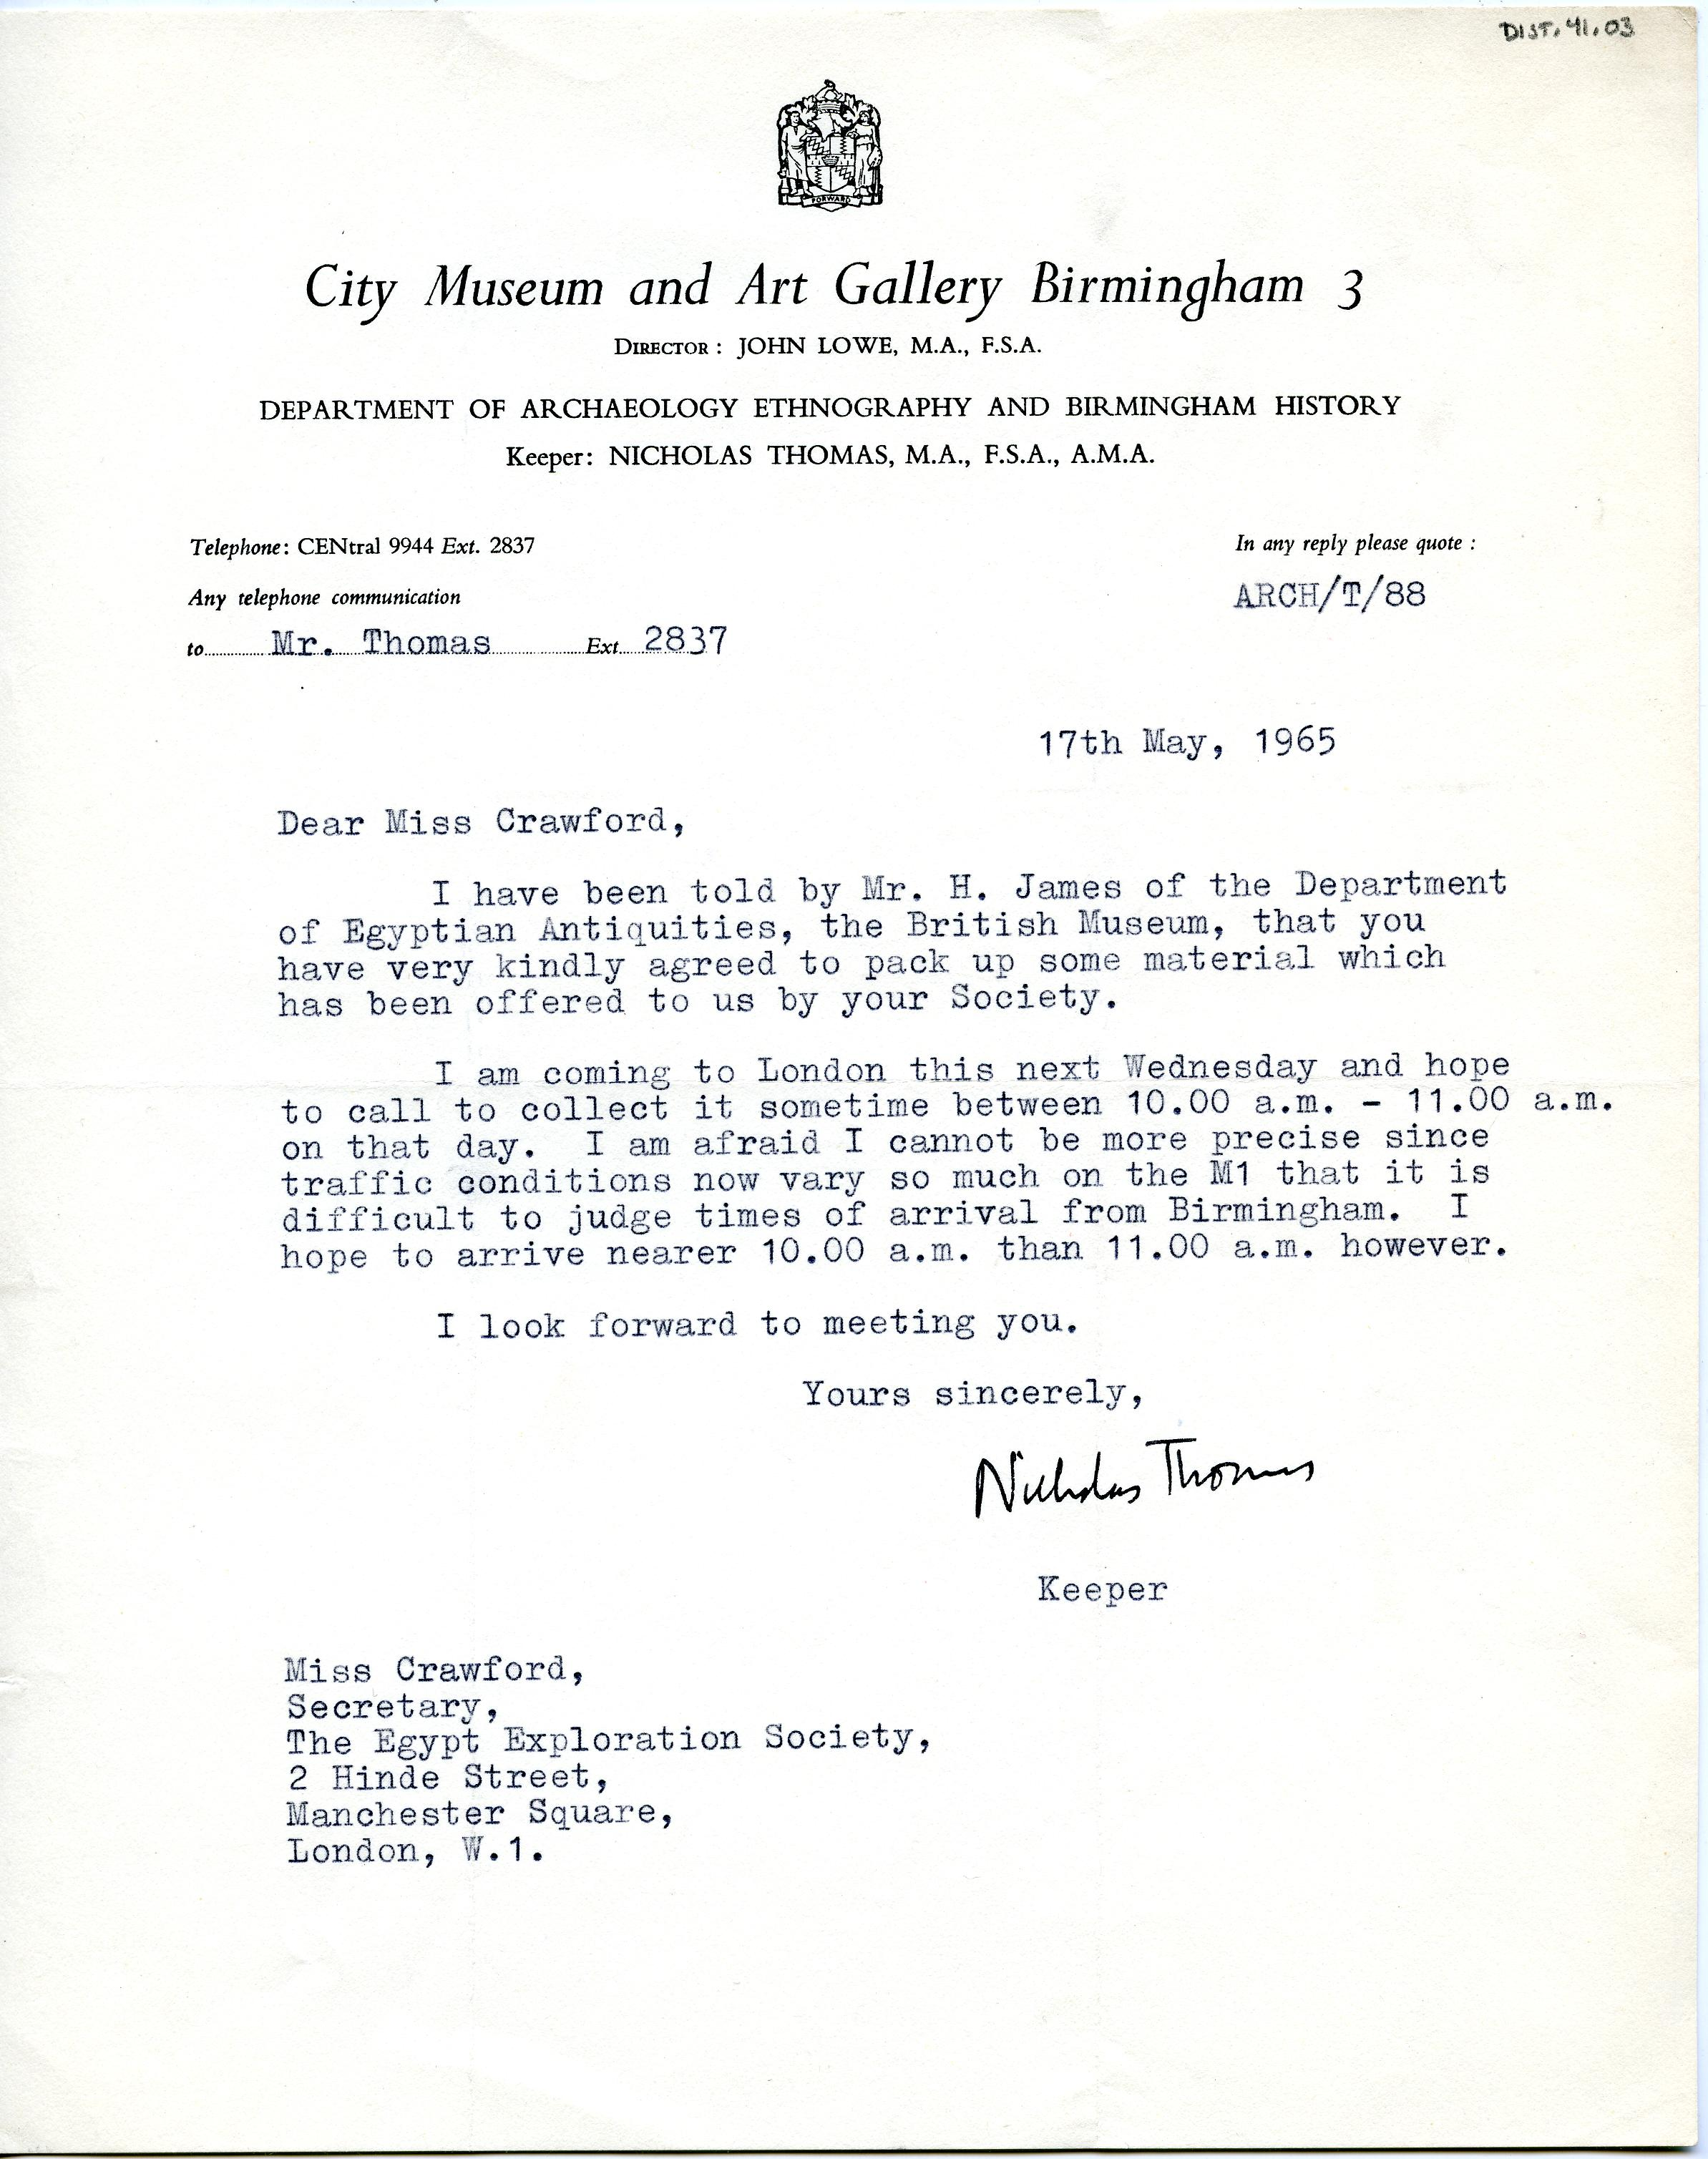 1922-76 Miscellaneous correspondence with museums DIST.41.03